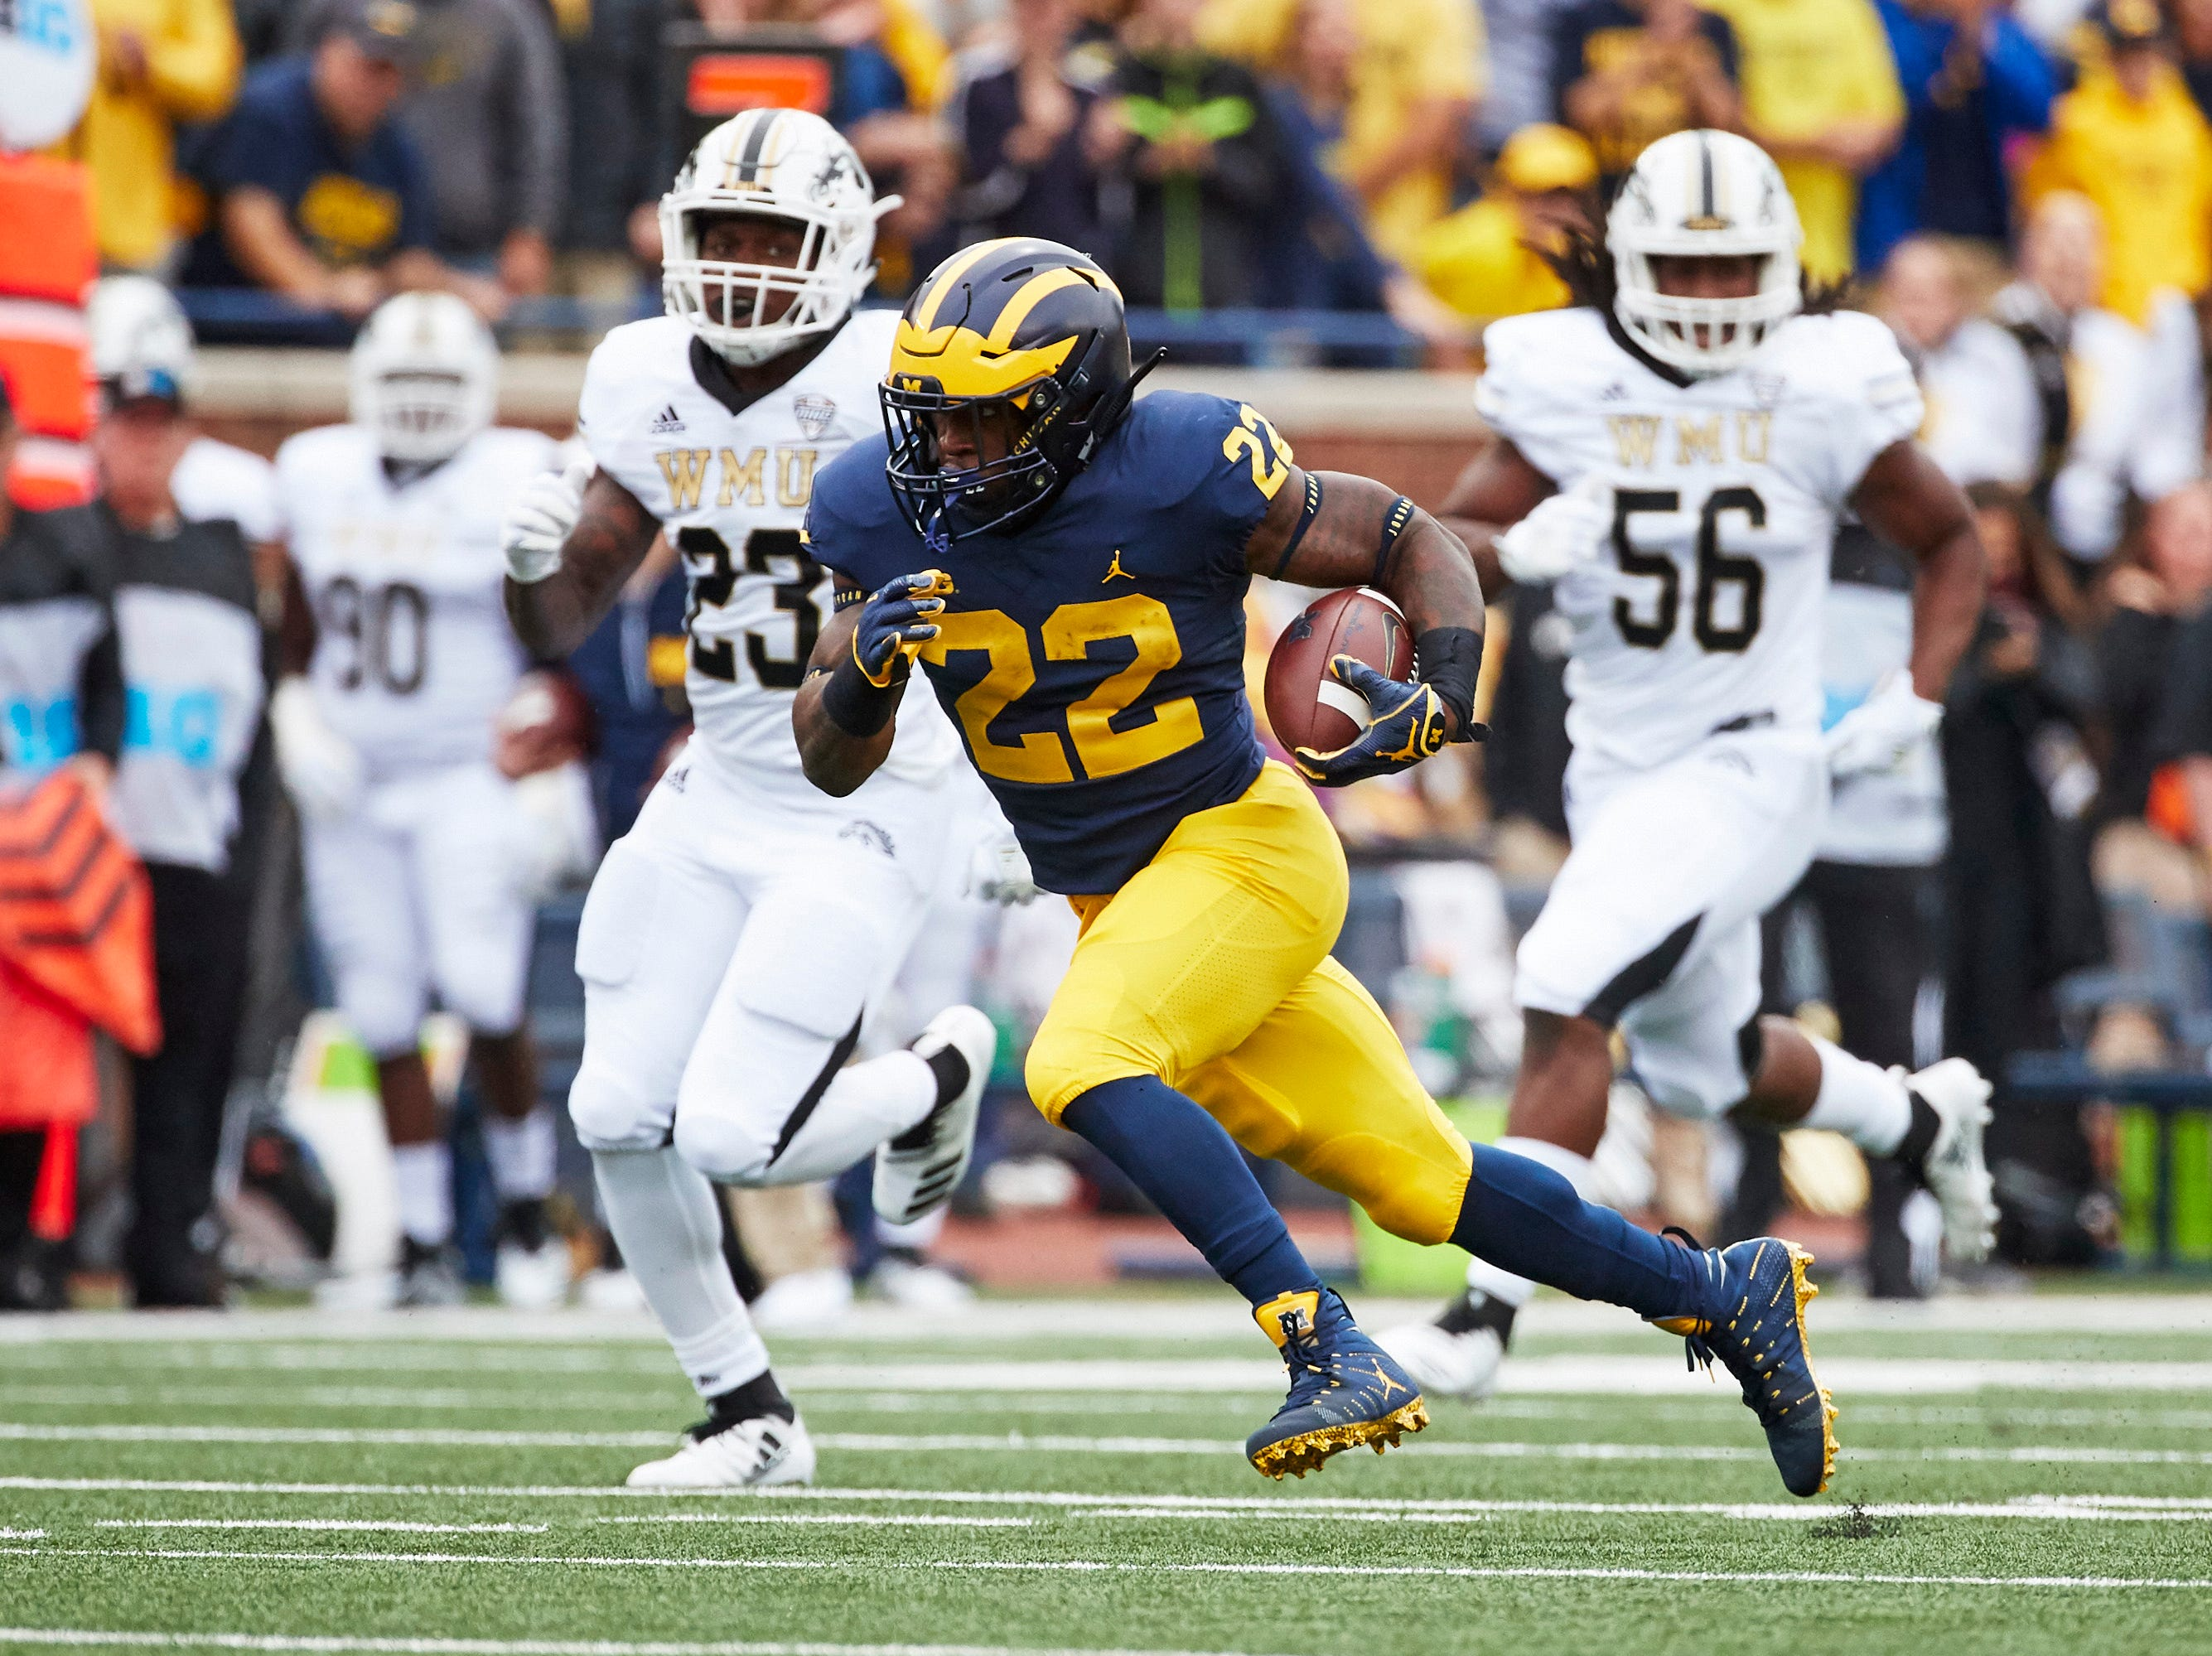 Michigan running back Karan Higdon rushes in the first half against Western Michigan.